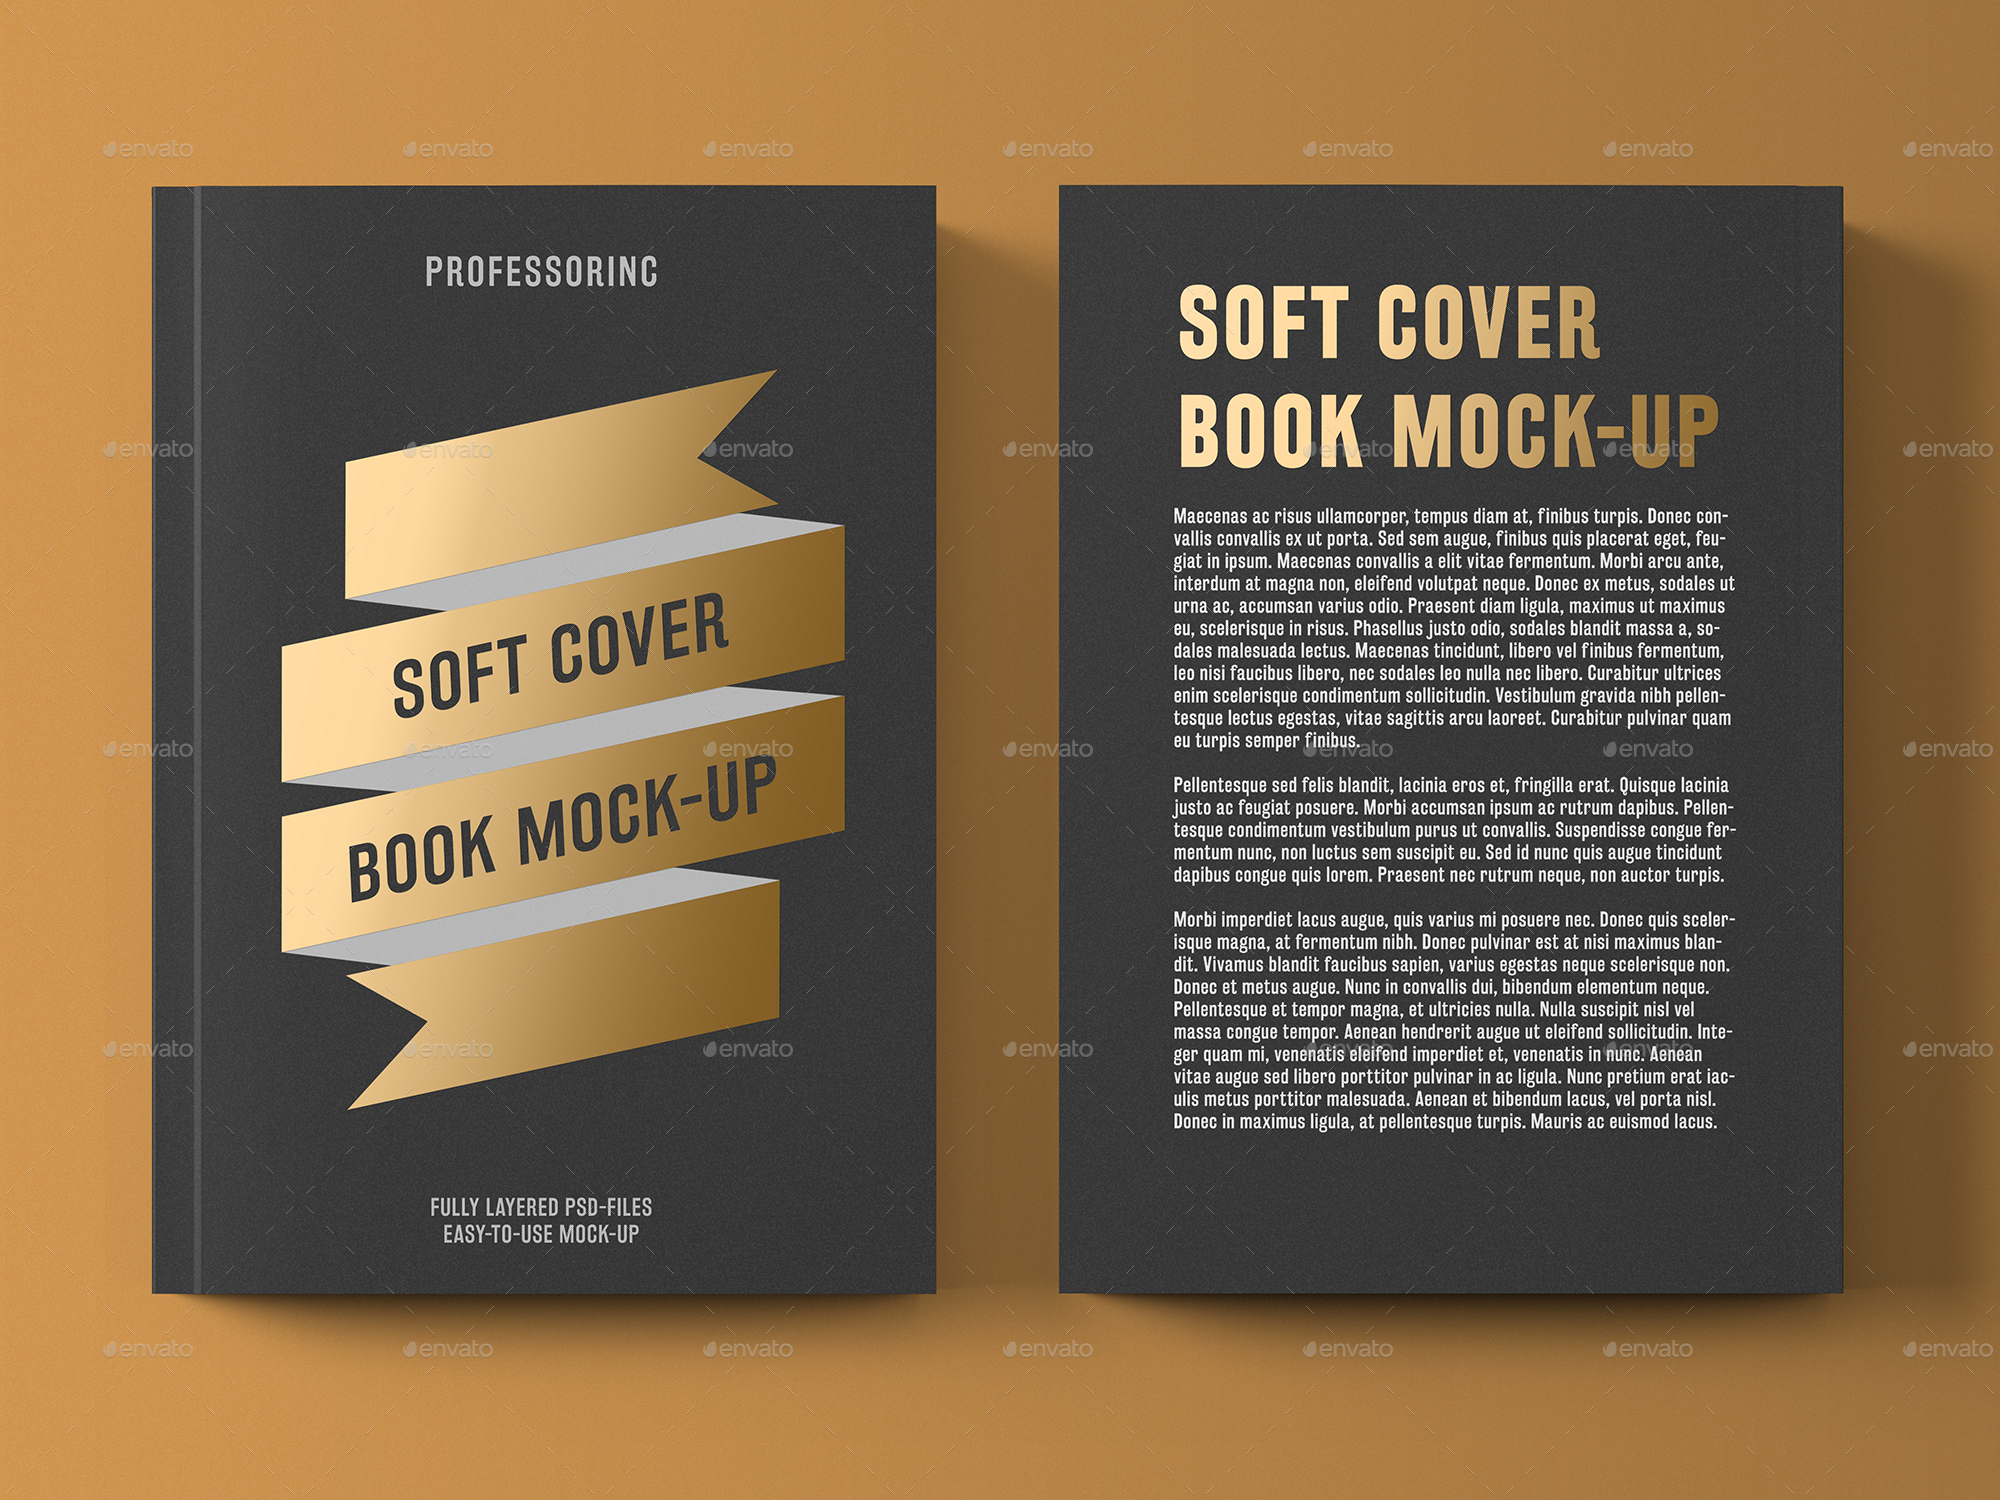 Soft Cover Book Mockup Template ~ Soft cover book with foil stamping mock up by professorinc